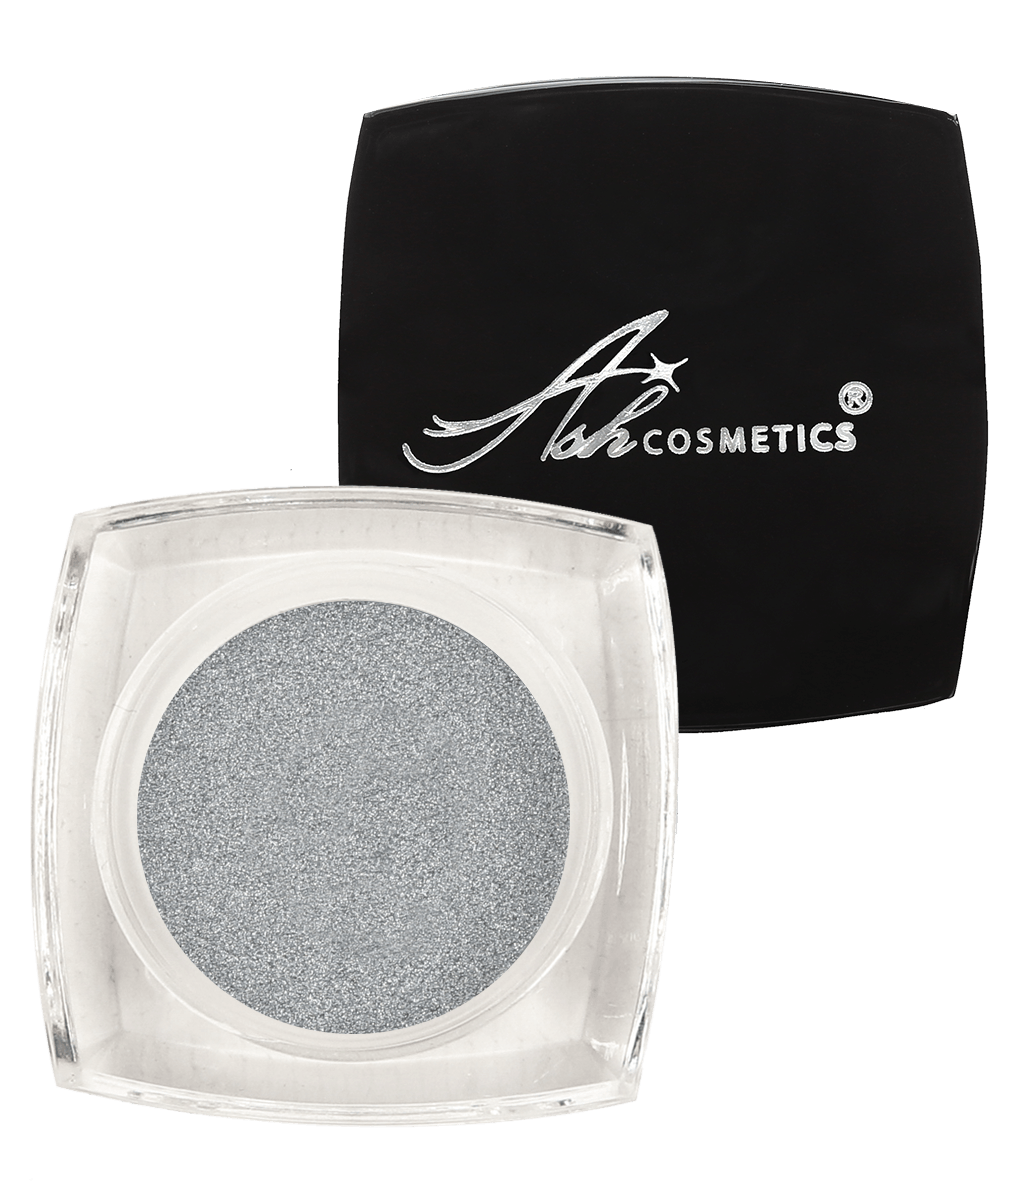 AshcosmeticsLong-wear HD Gel liners Shade Crystal